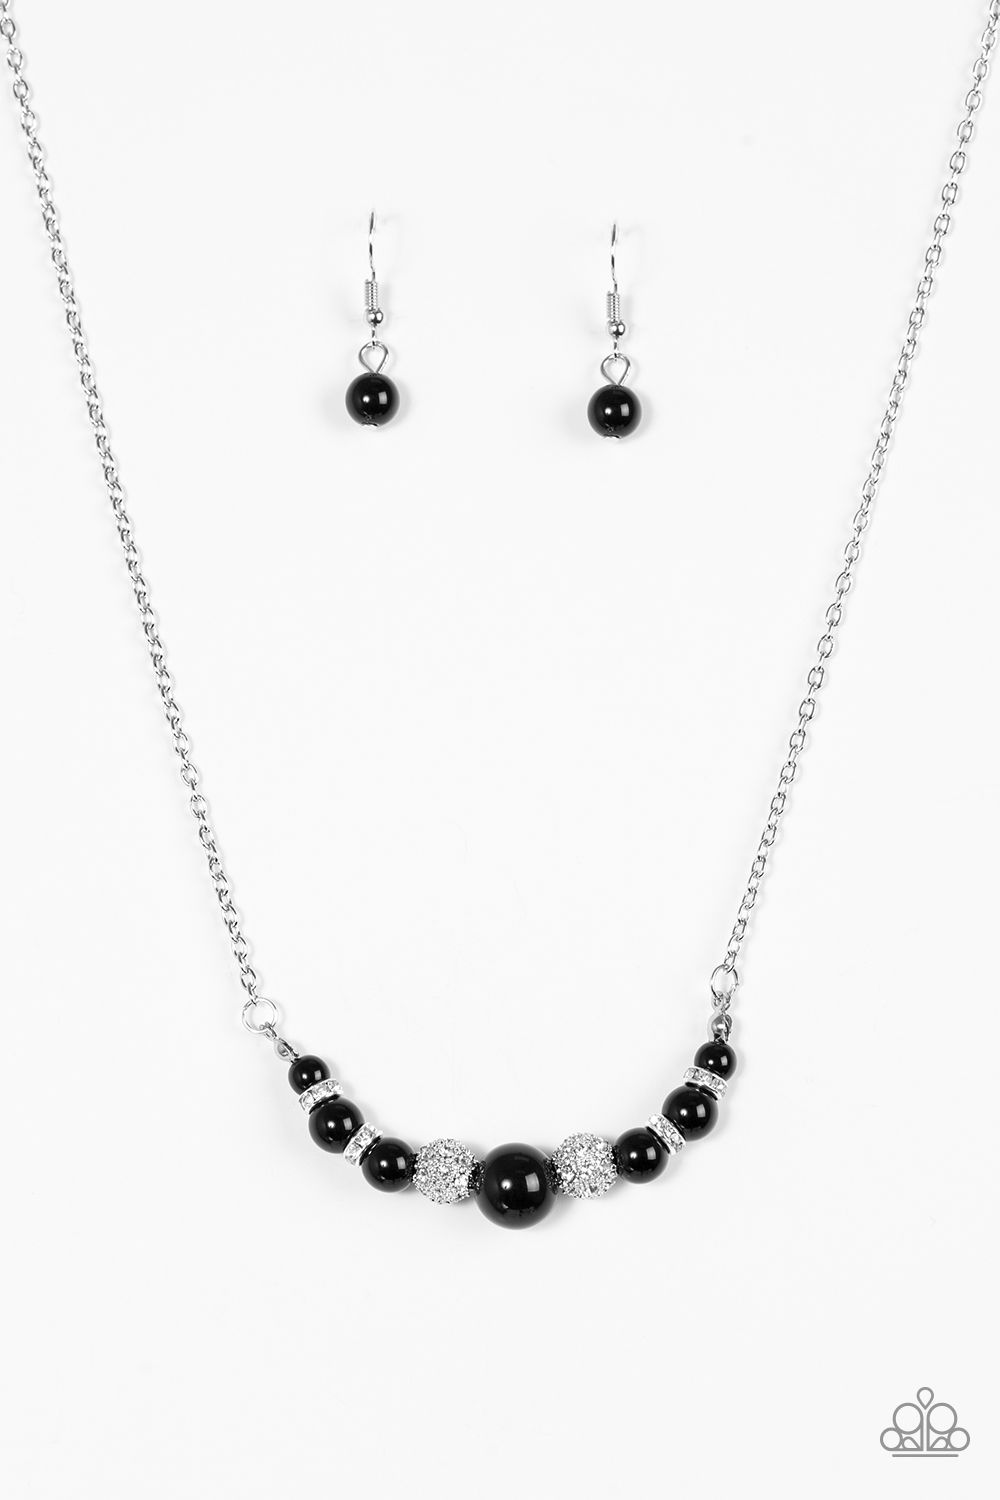 93587d8546f47 Absolutely Brilliant - Black | Necklace and earrings Combination $5 ...